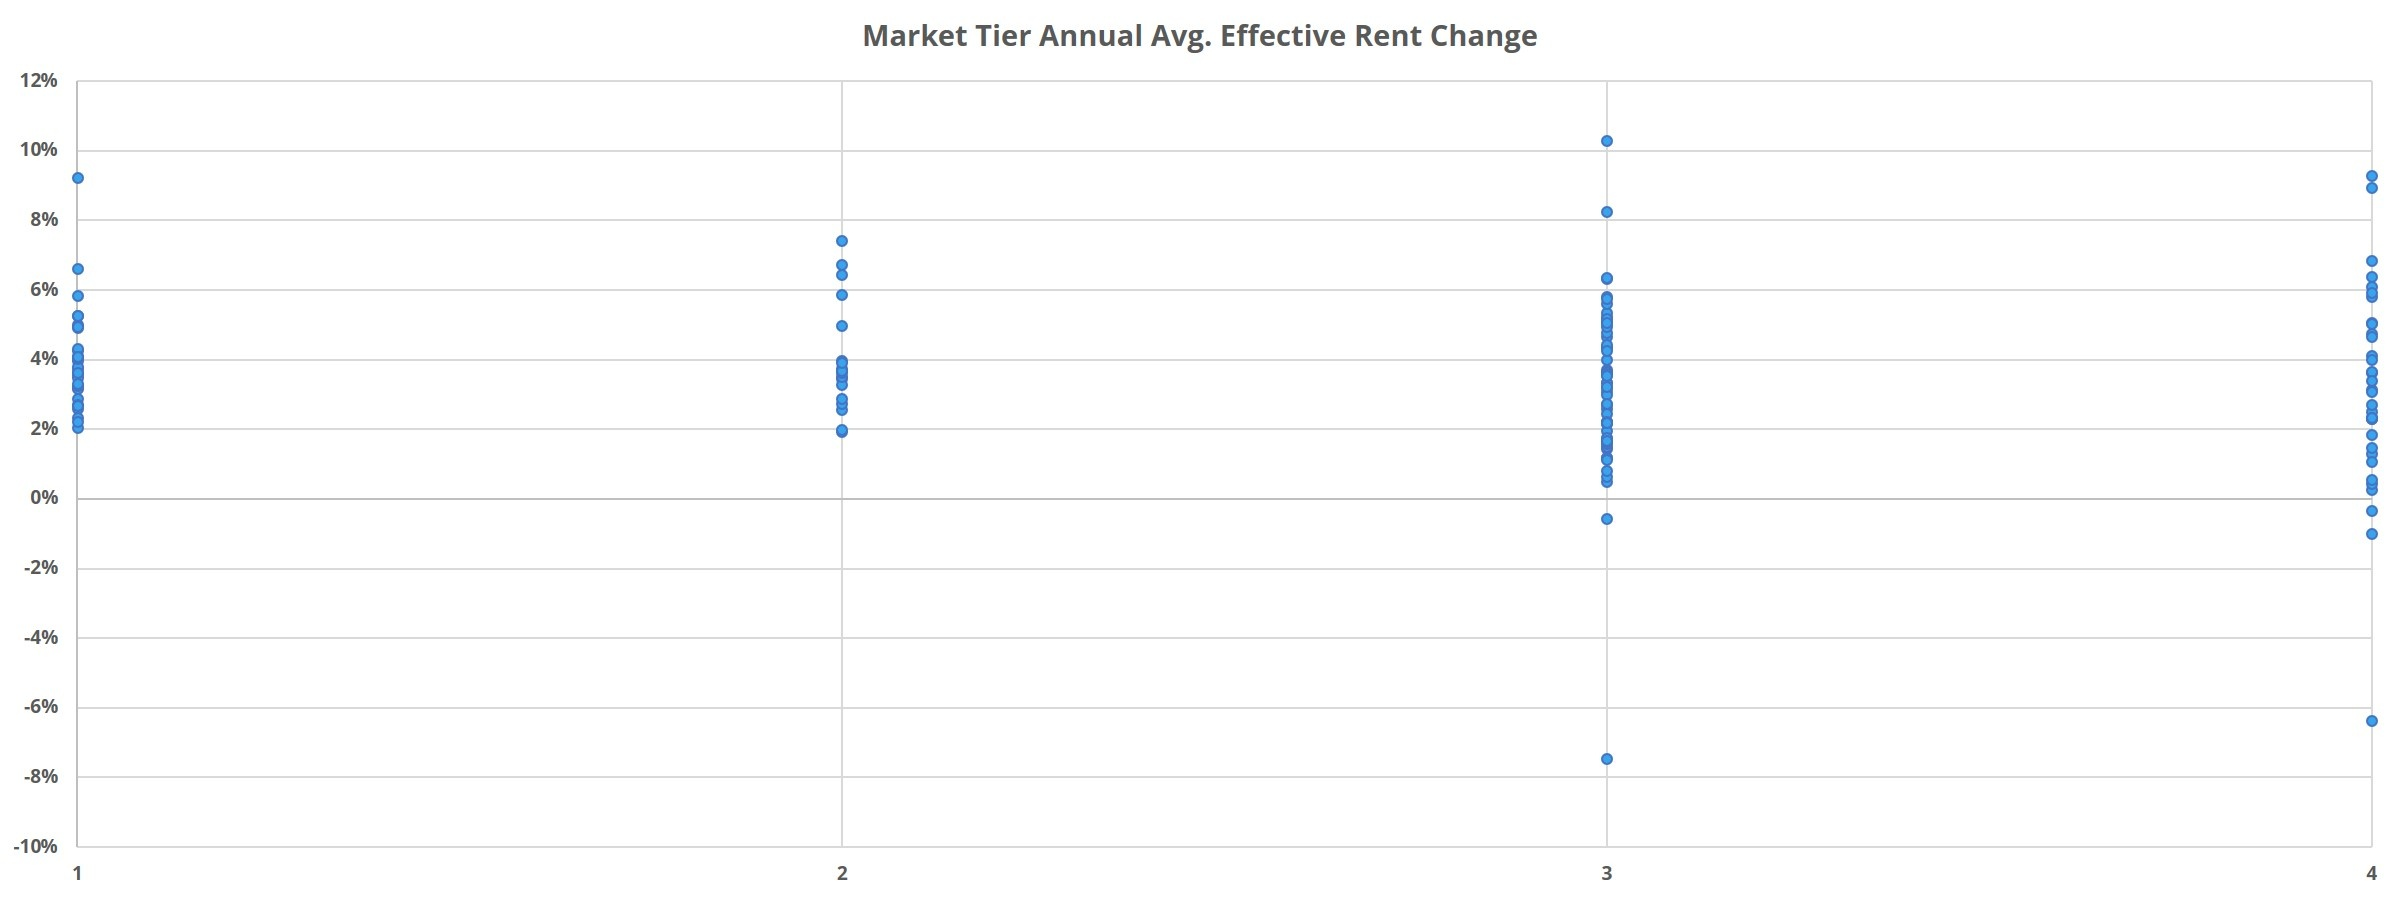 Market Tier Annual Avg. Effective Rent Change